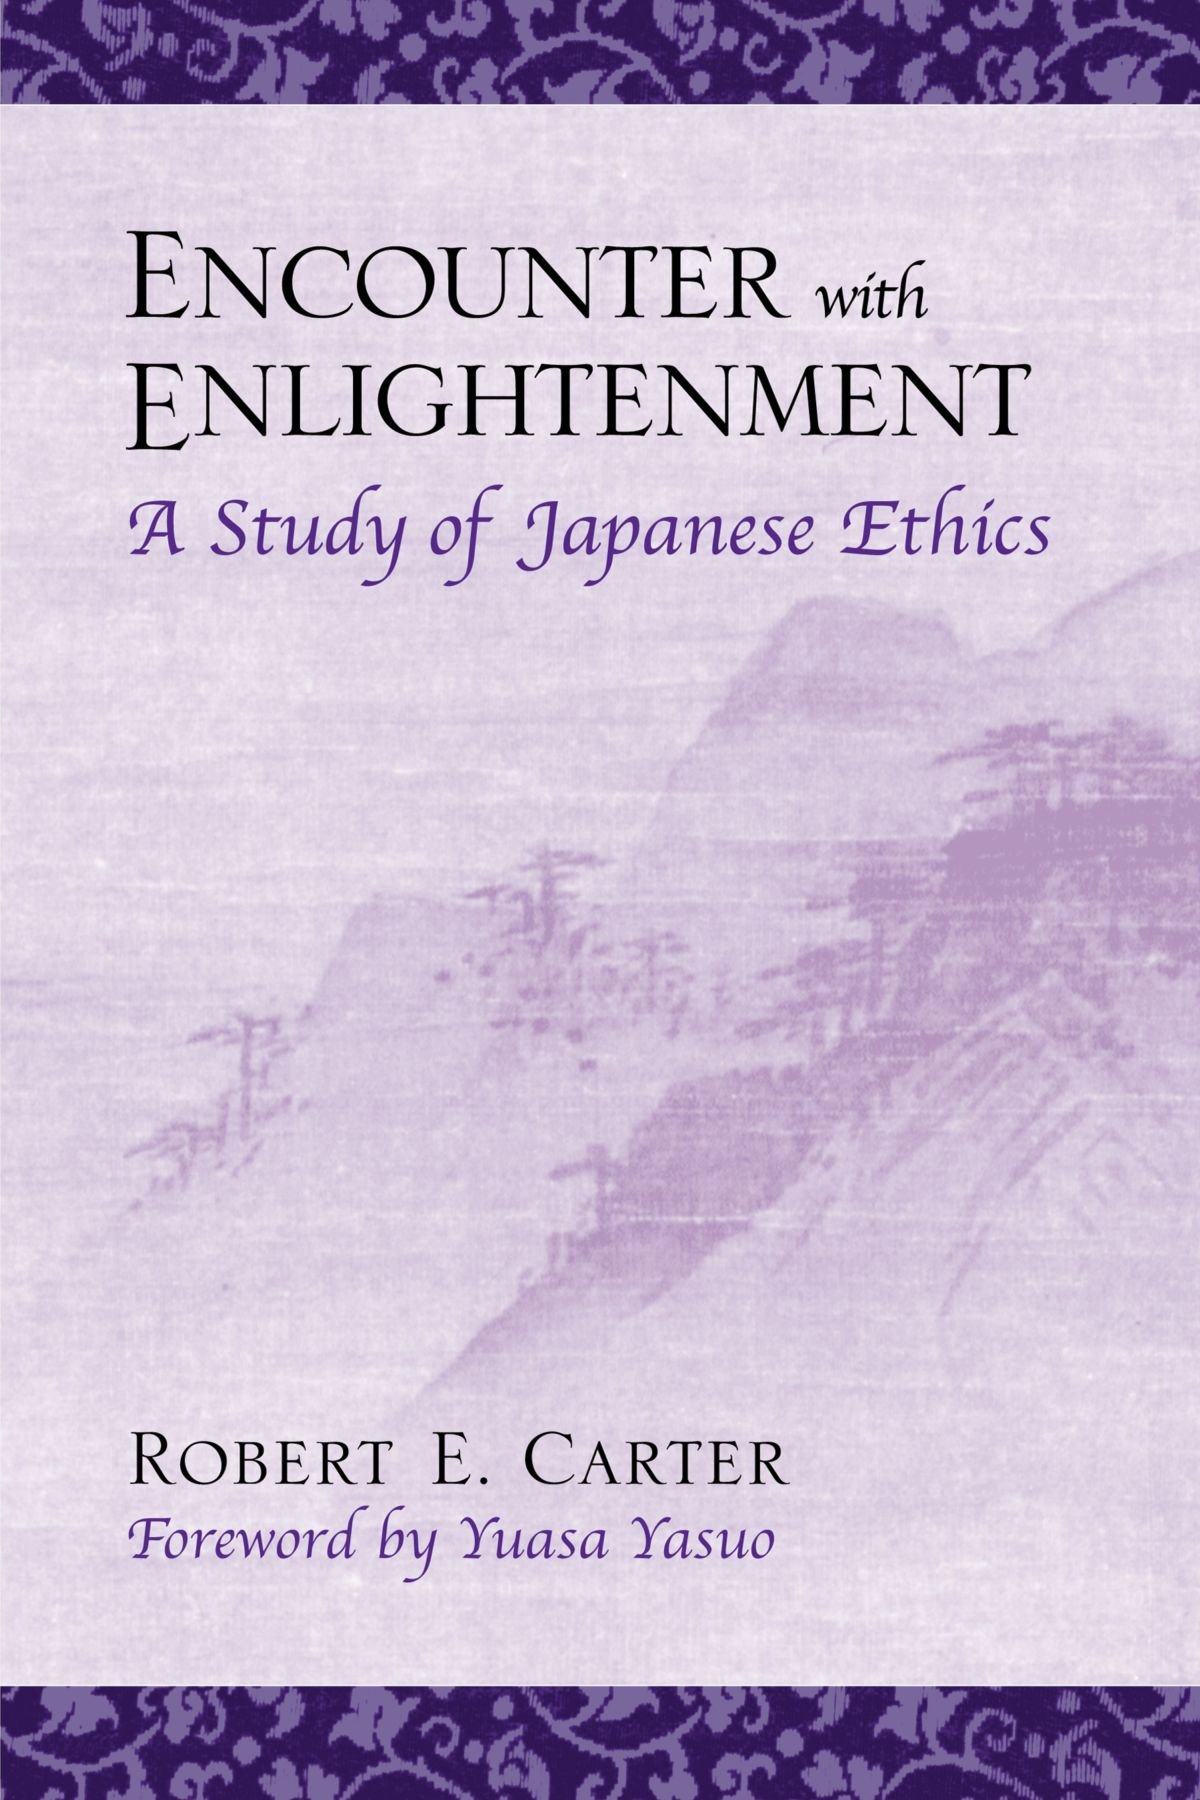 Download Encounter with Enlightenment: A Study of Japanese Ethics (SUNY series in Modern Japanese Philosophy) PDF